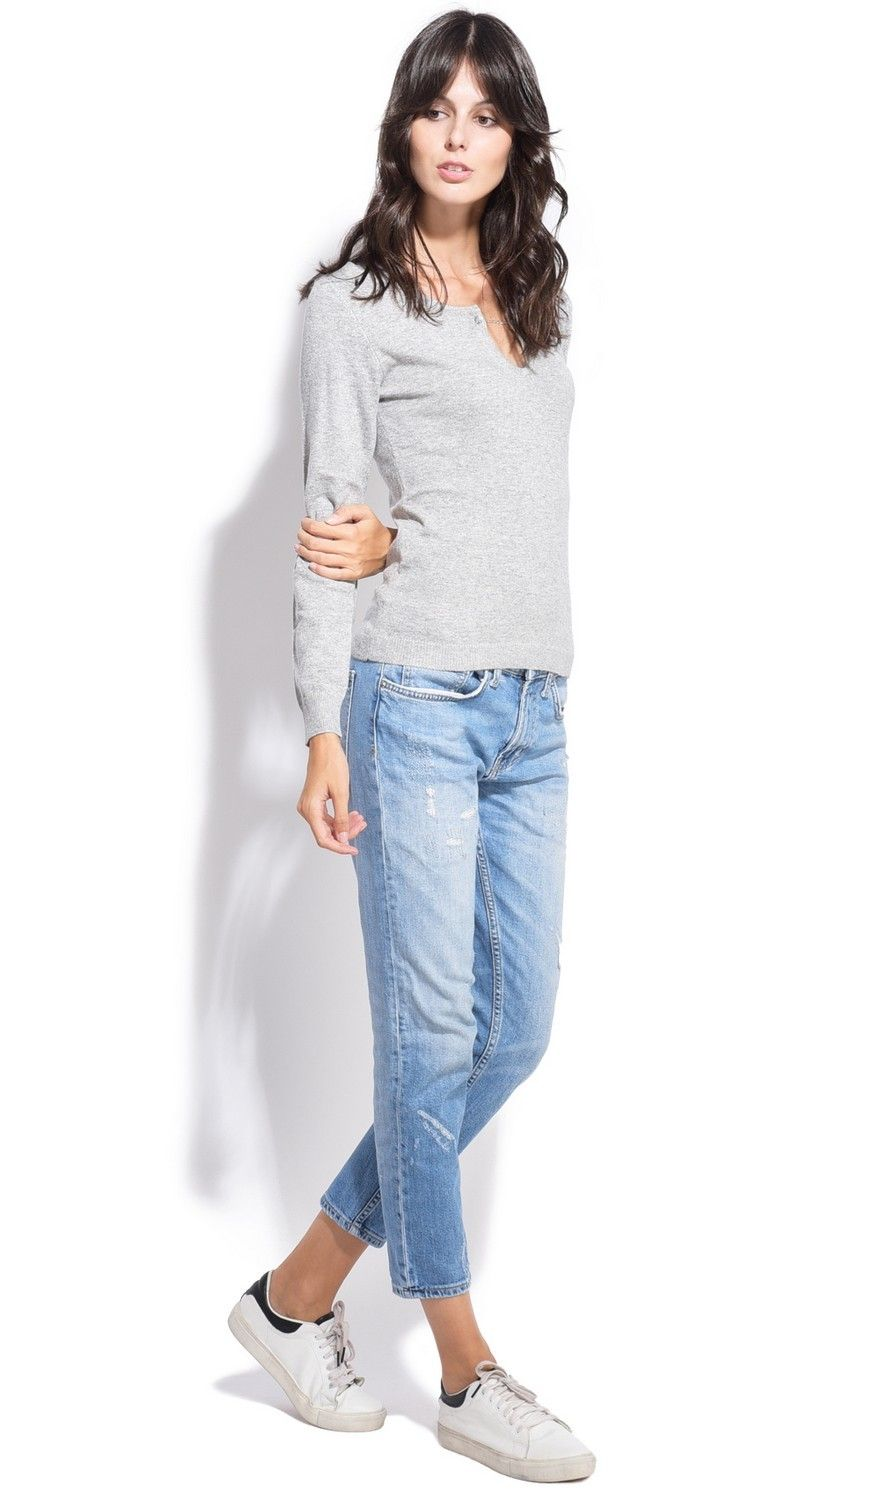 Assuili Open Collar Long Sleeve Sweater with Button in Light Grey